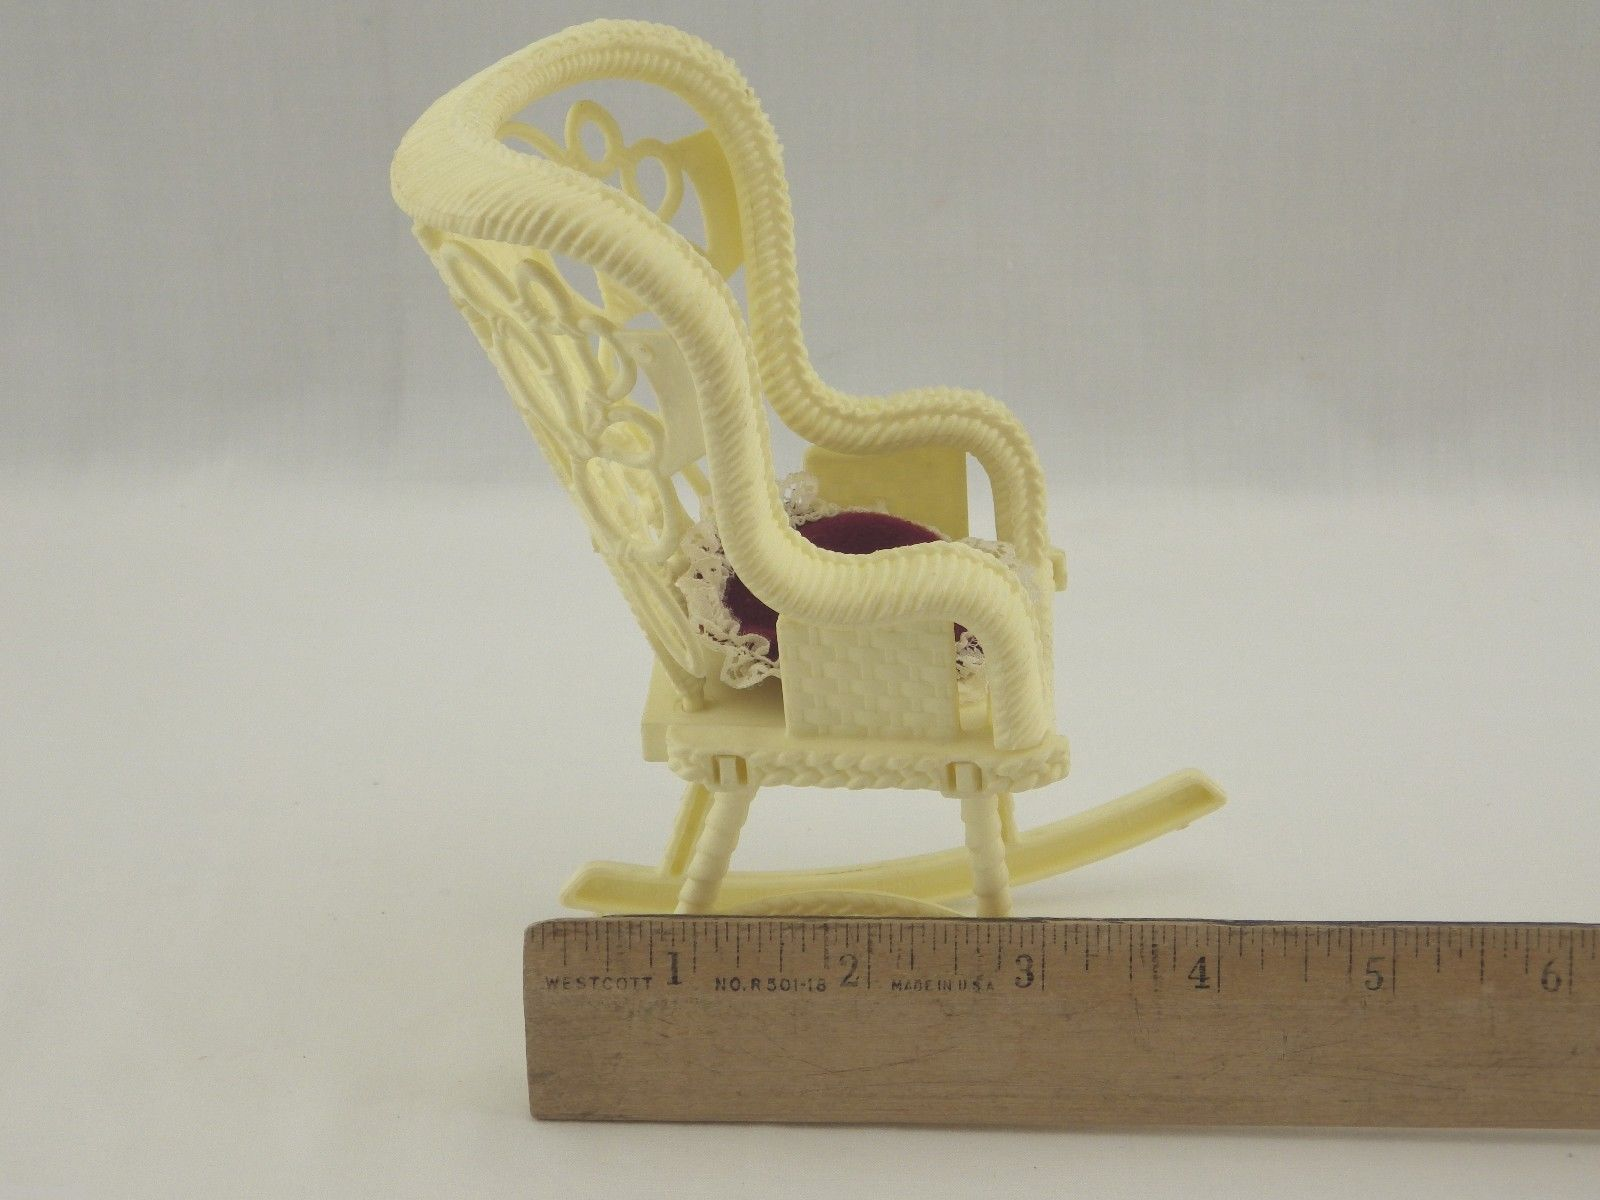 Doll House Miniature Sunshine Family Baby's Wicker Rocking Chair Nursery Pillow | eBay